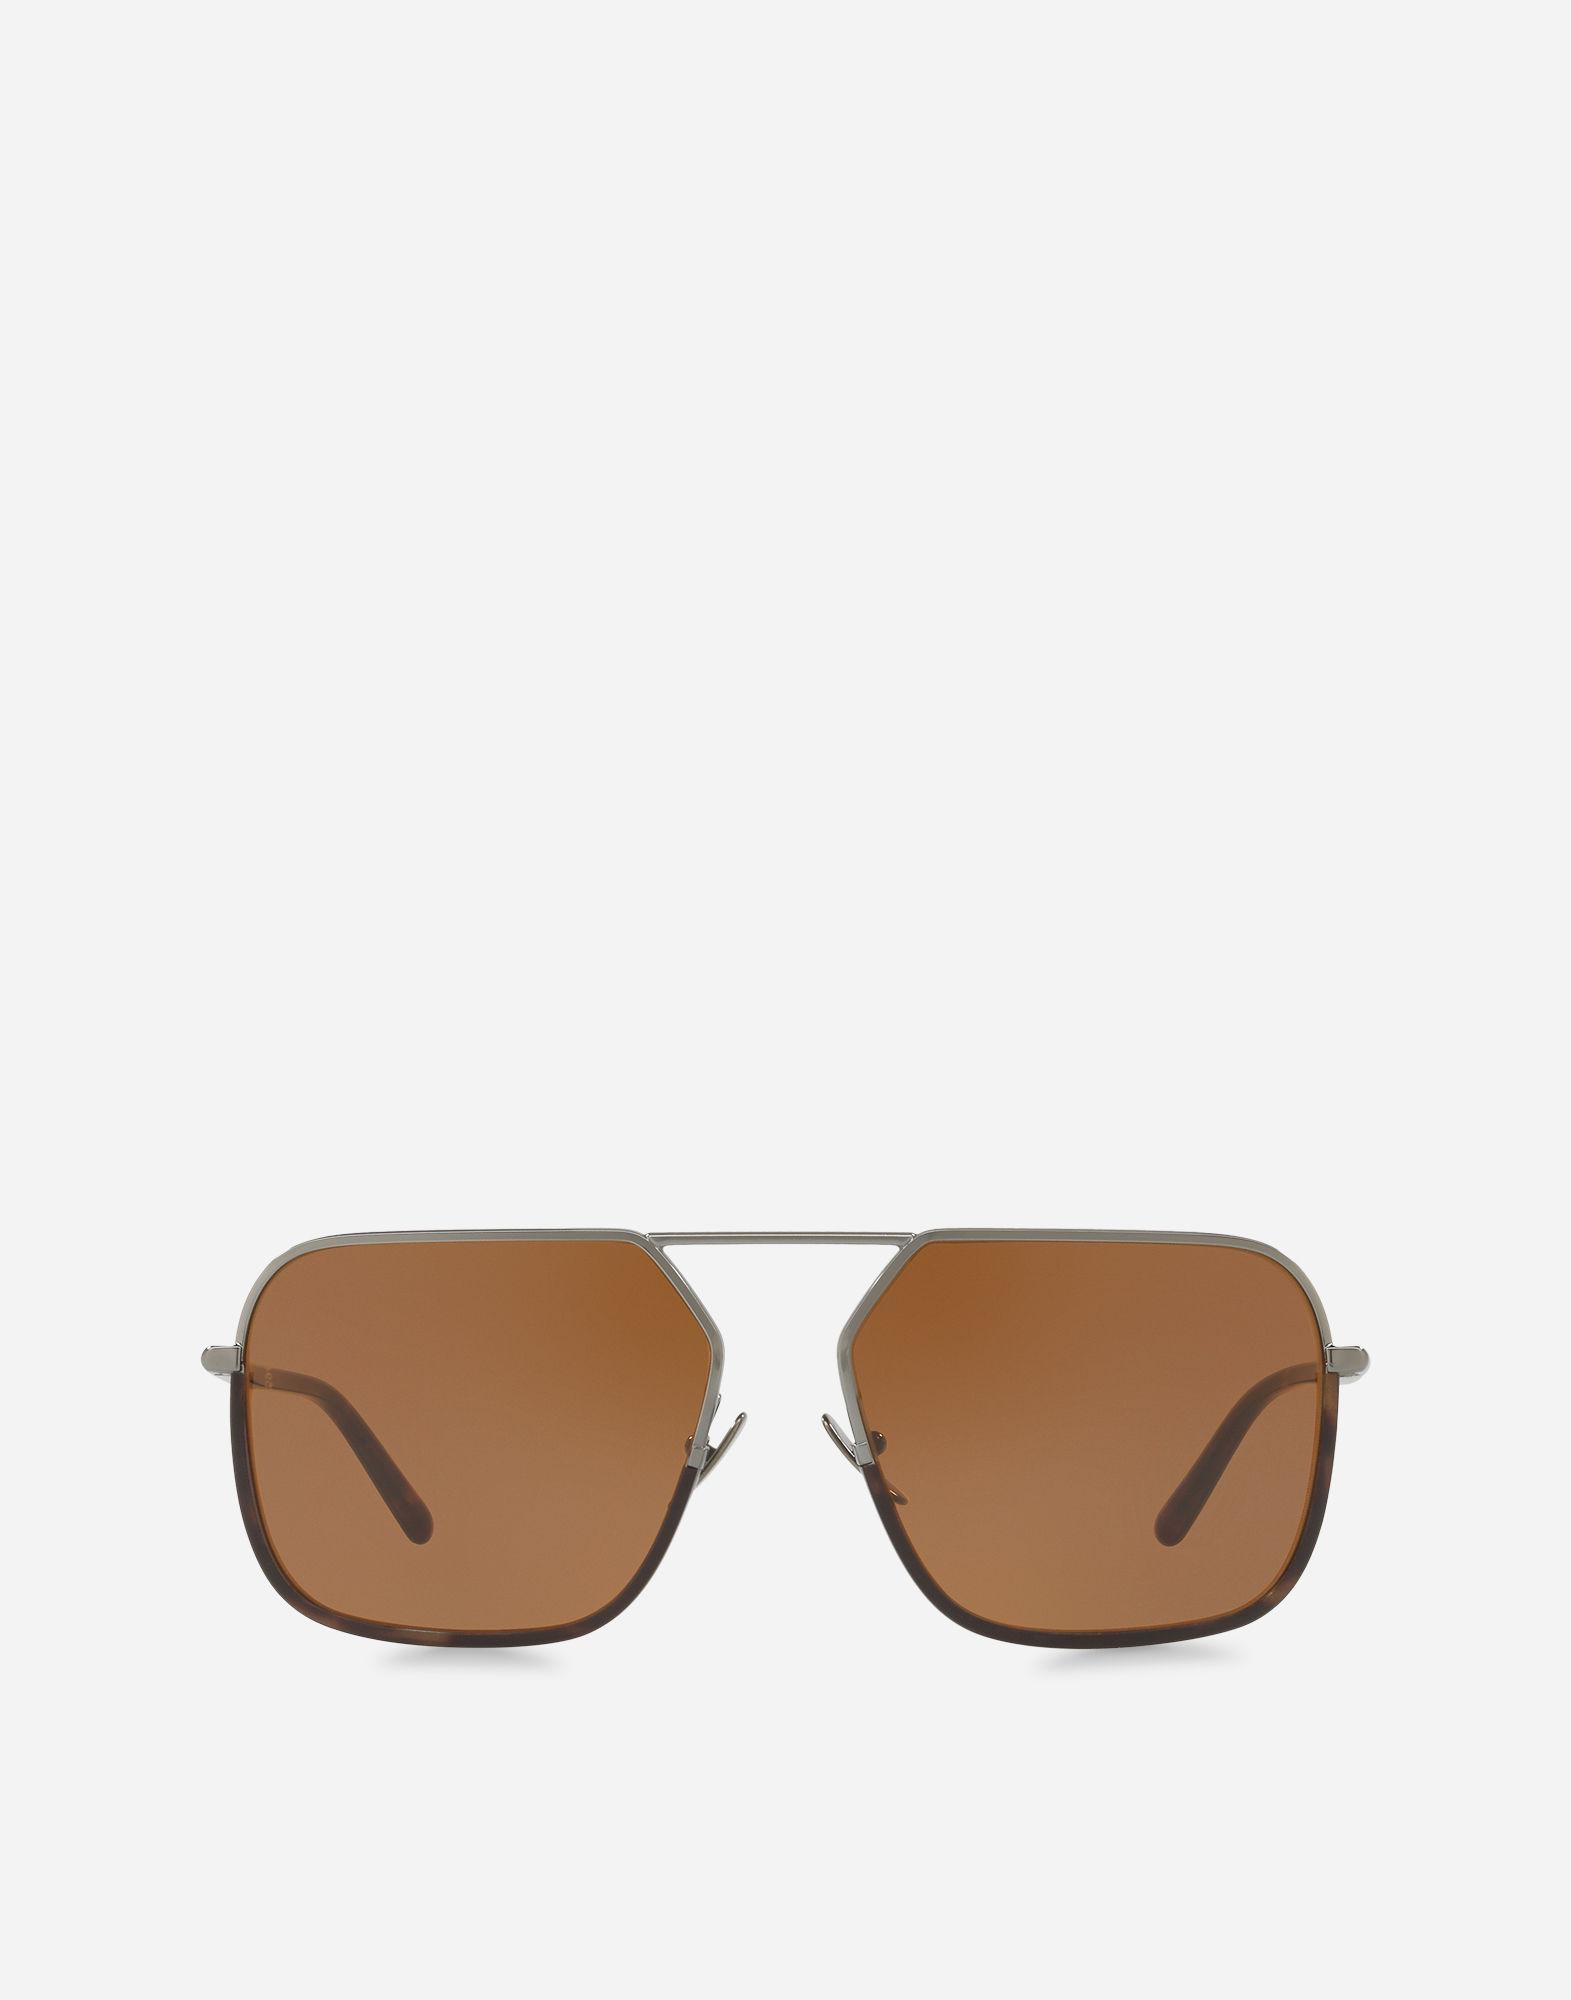 Lyst - Dolce & Gabbana Rectangular Sunglasses With Metal Bridge in ...